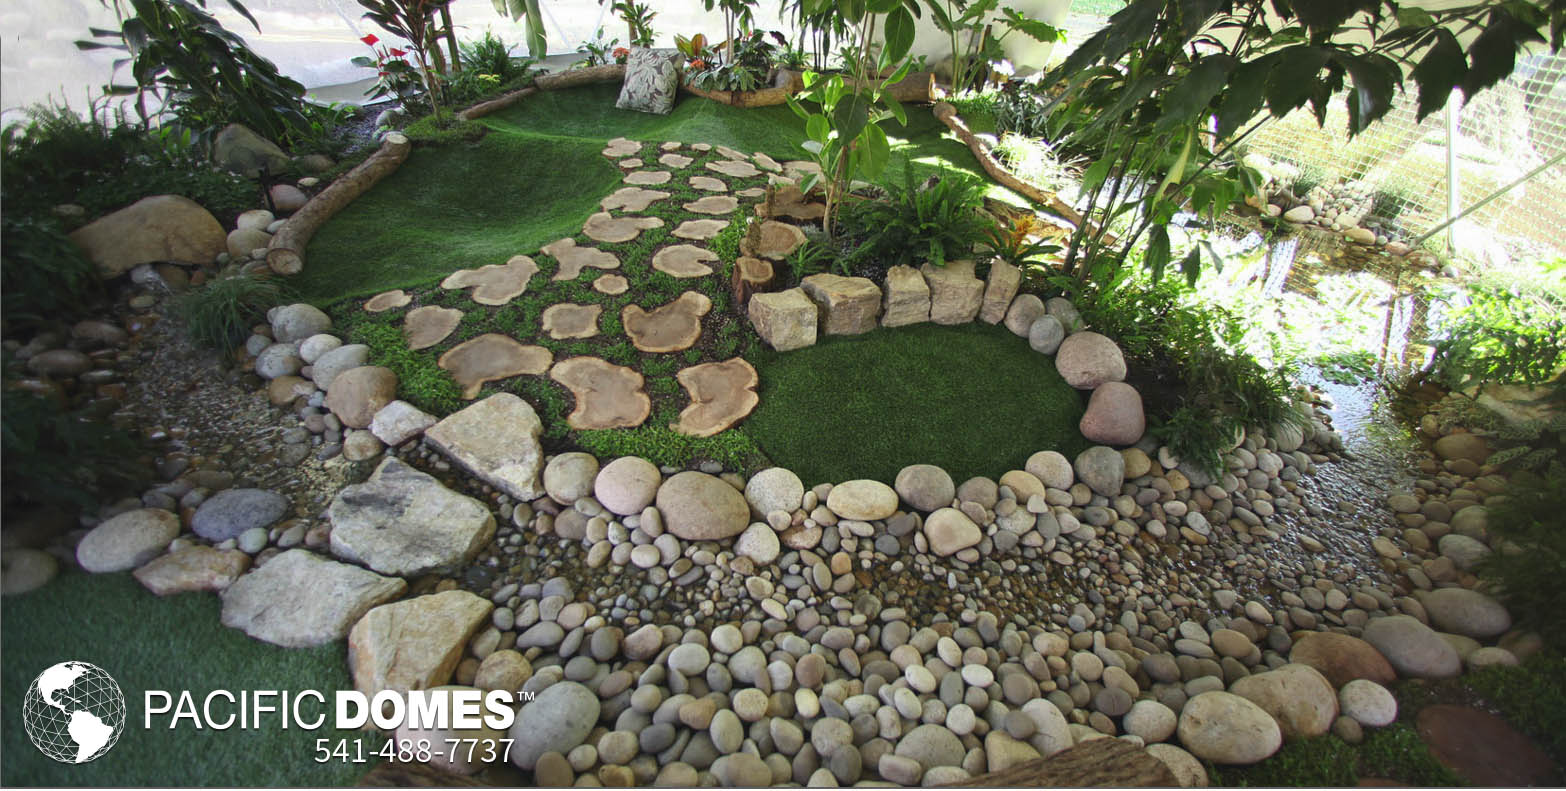 Outdoor Greenhouse Dome Kit - Pacific Domes